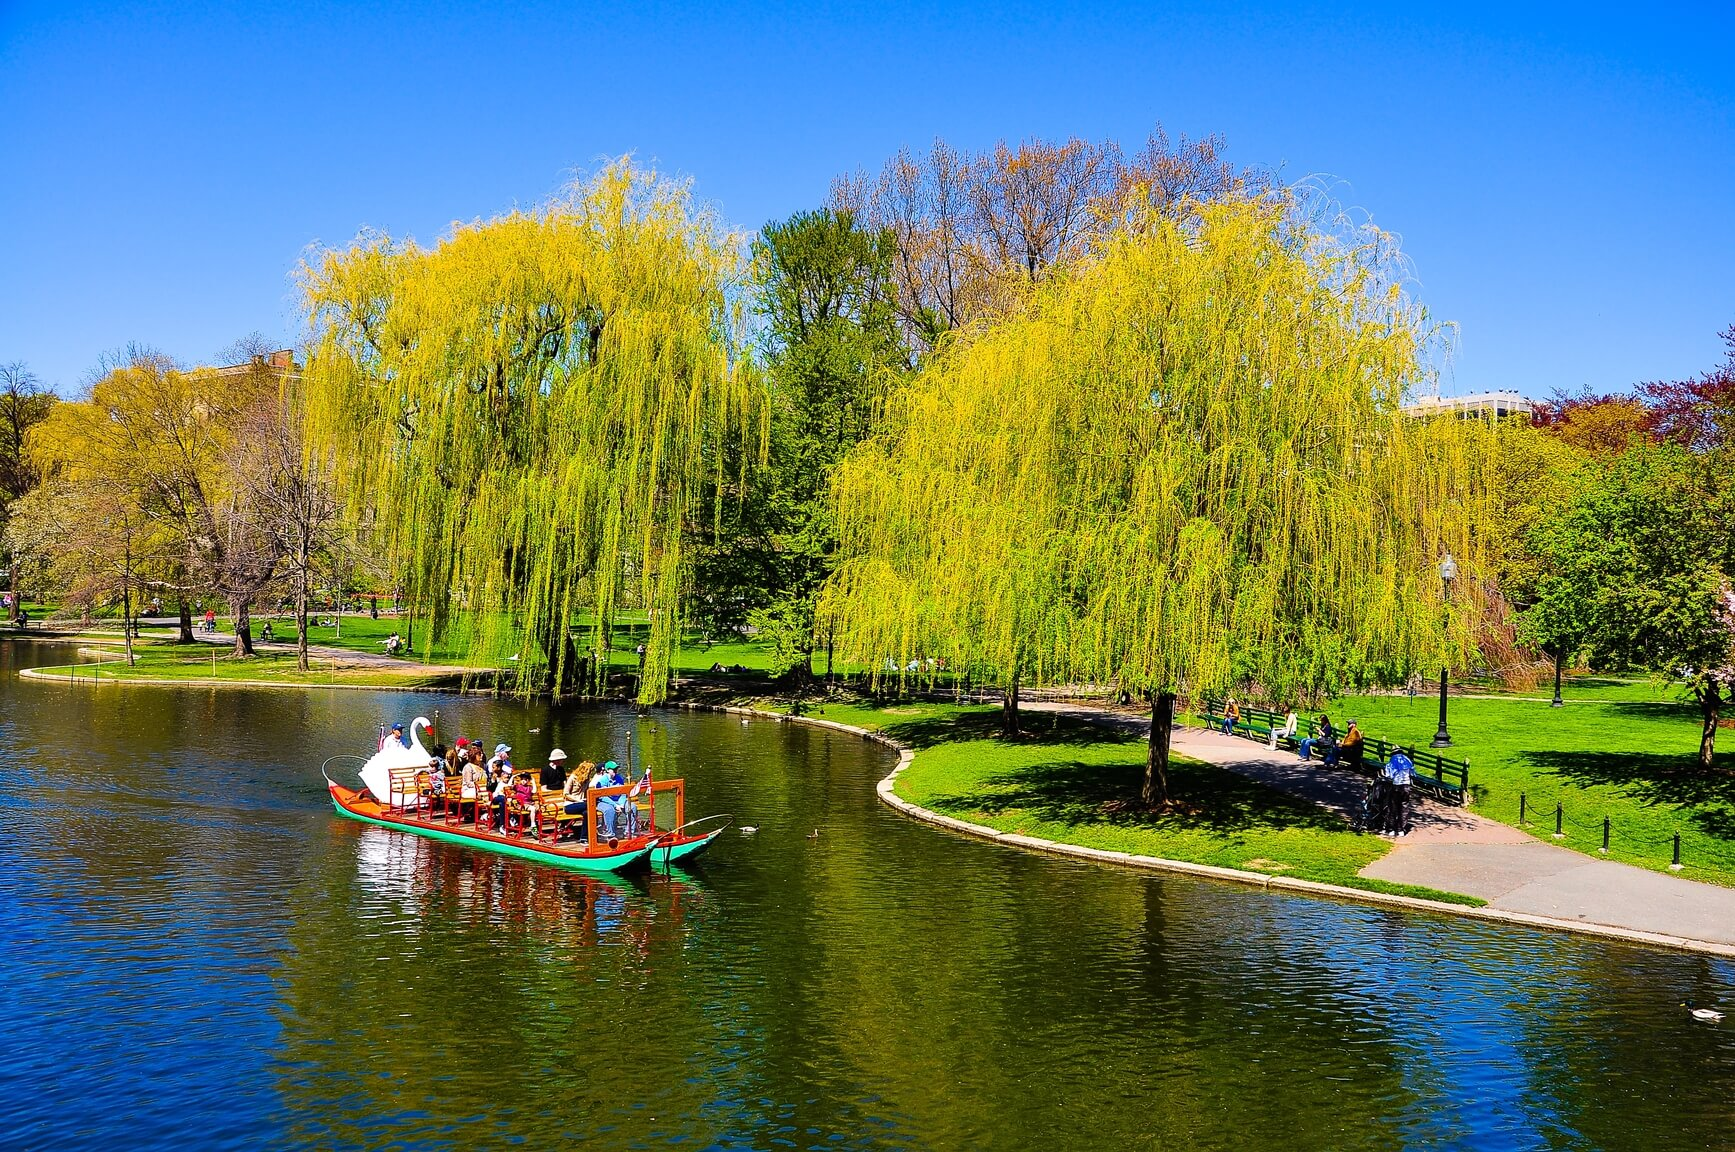 HOT!! Barcelona, Spain to Boston, USA for only €114 roundtrip